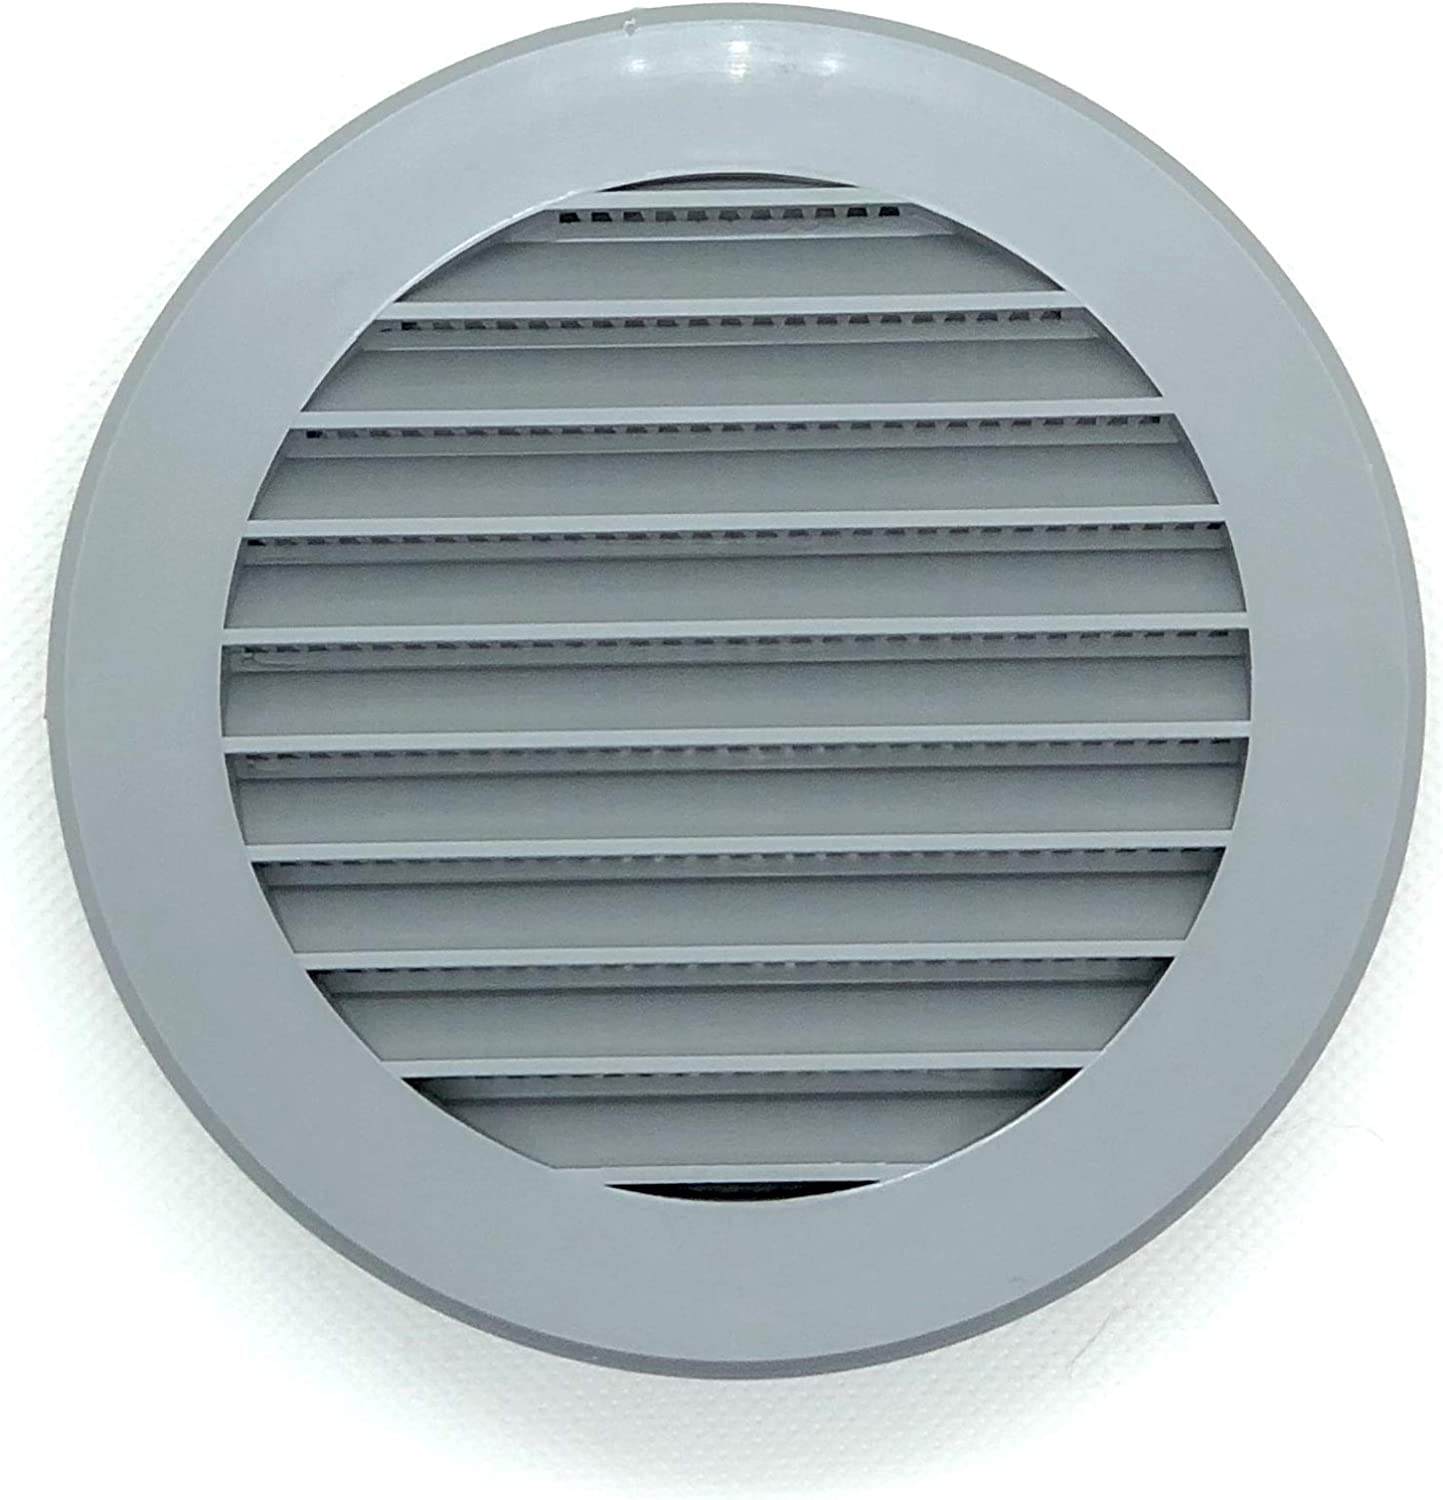 Vent Cover - Round Soffit Vent - Air Vent Louver - Grille Cover - Built-in Fly Screen Mesh - HVAC Ventilation (4'' Inch, Plastic - Grey)